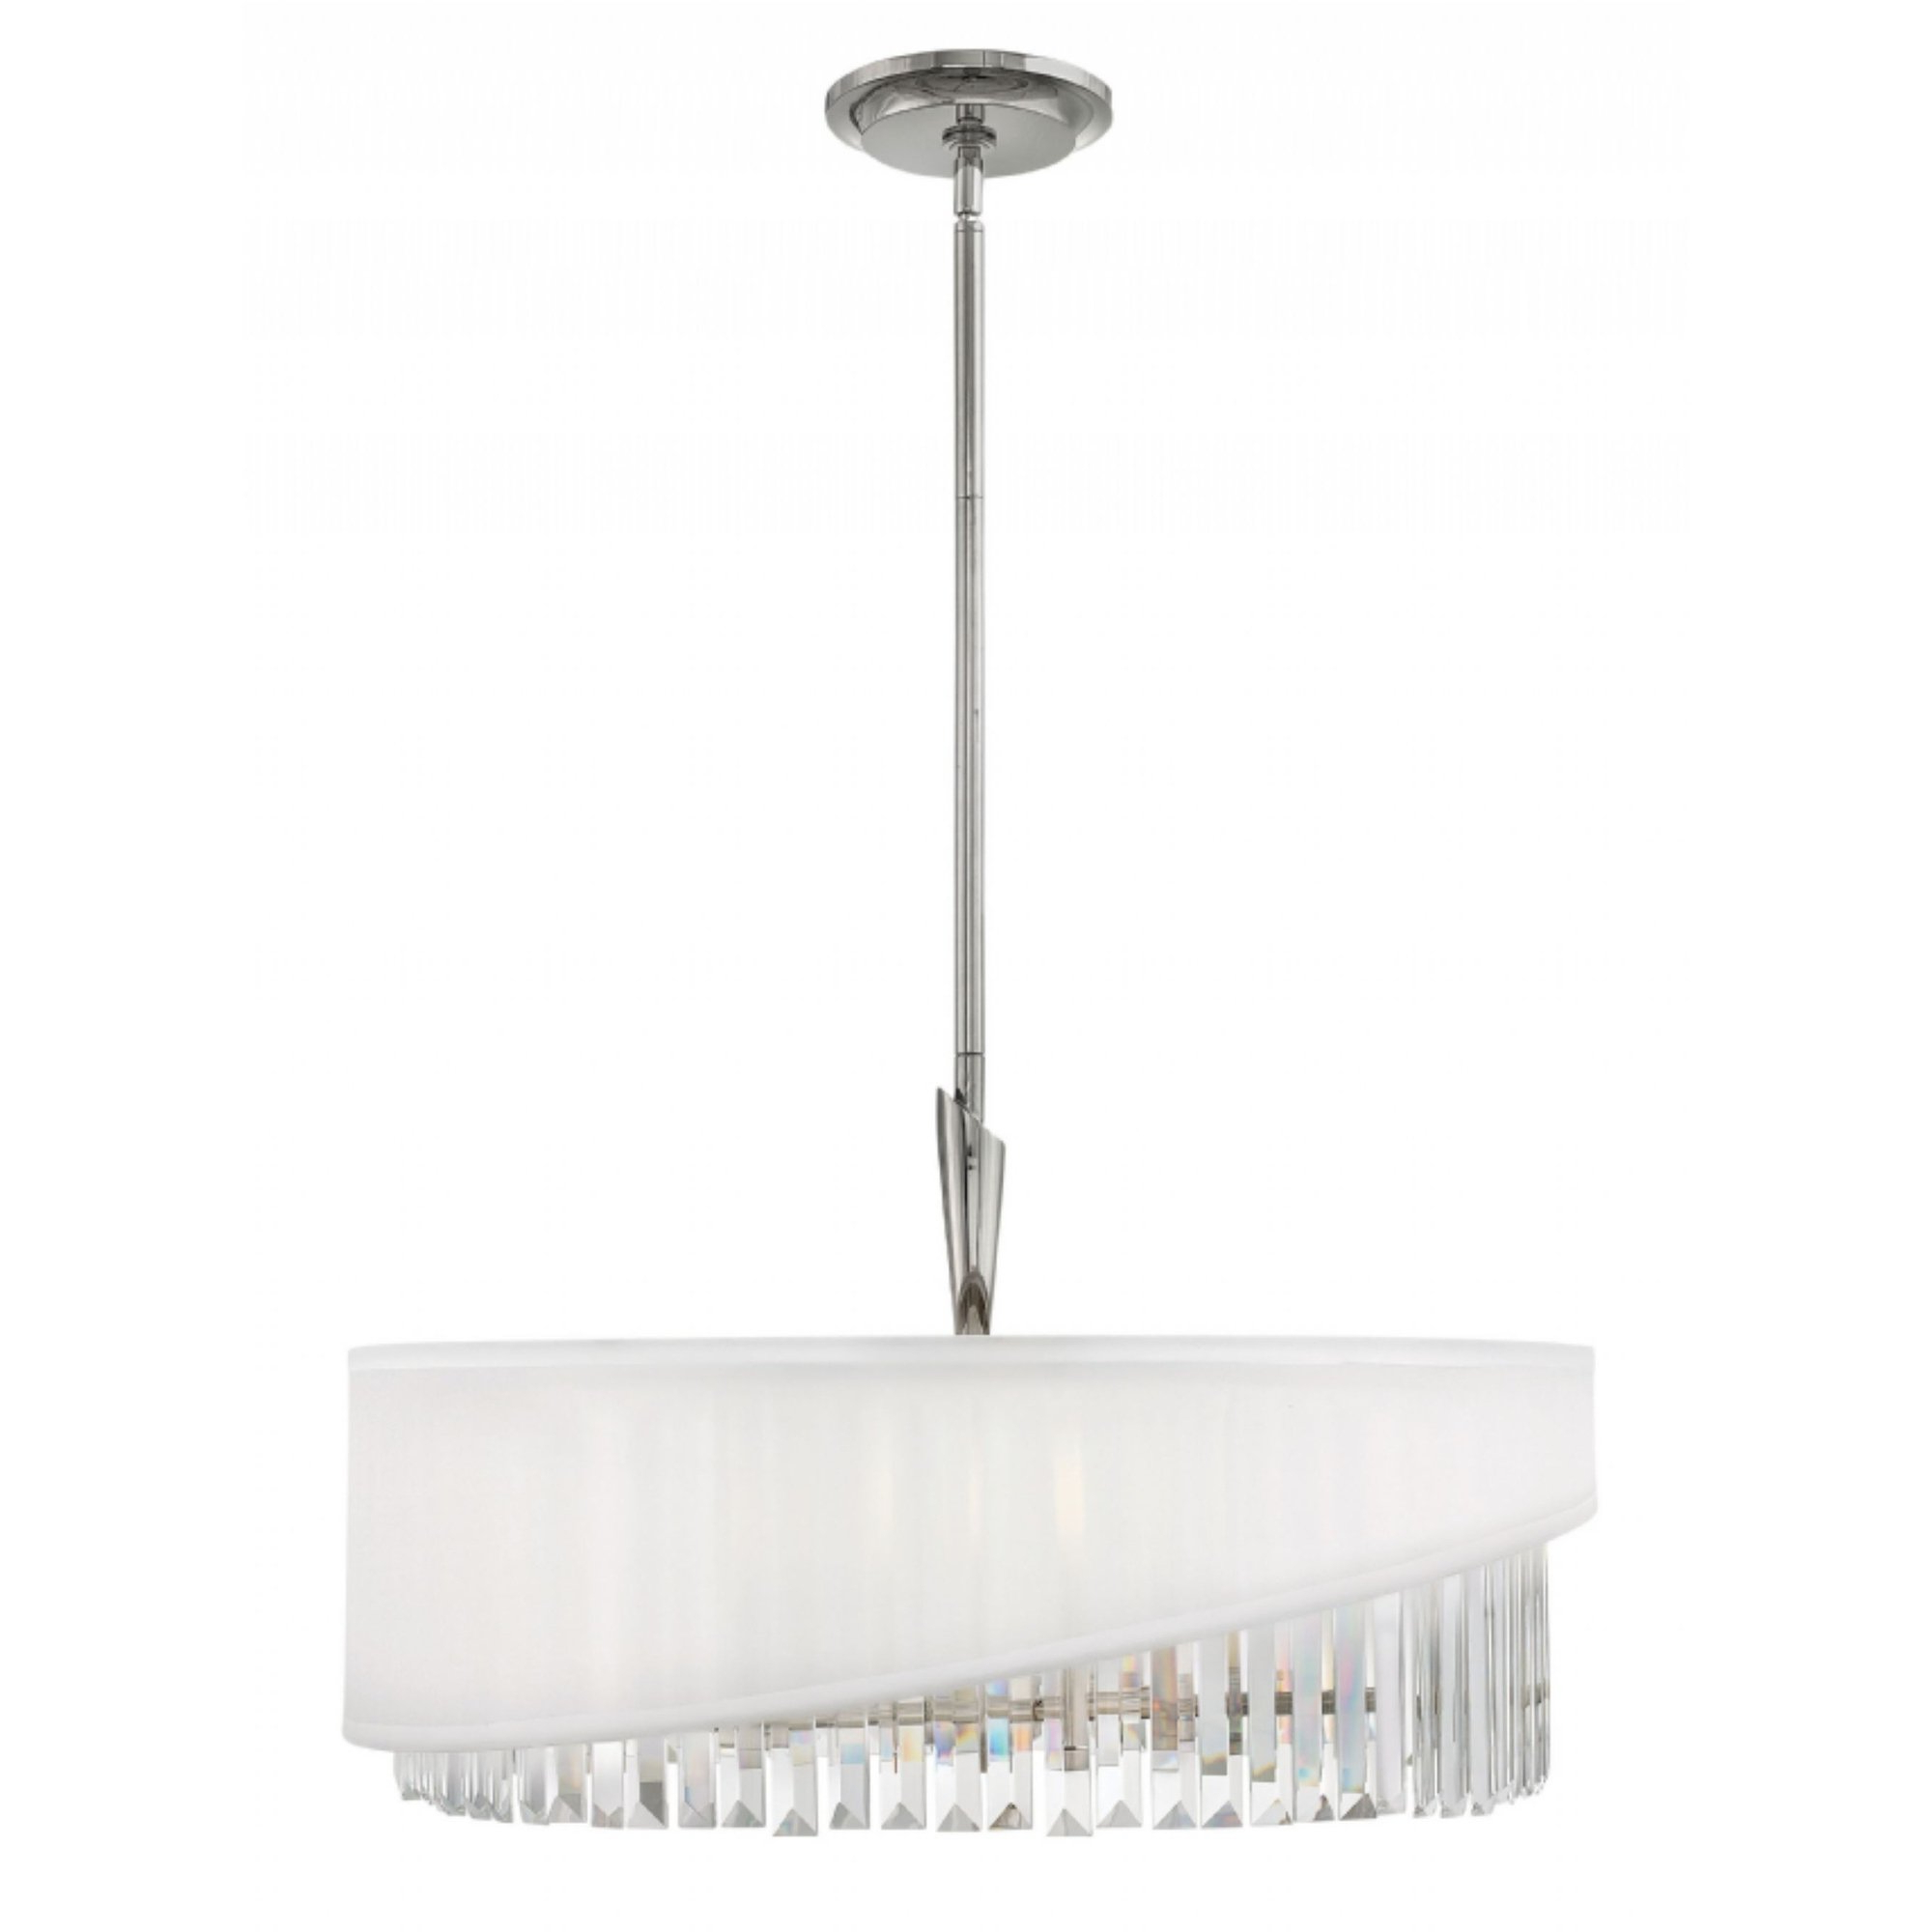 Alina 5 Light Drum Chandeliers With Well Liked Fredrick Ramond Gigi 5 Light Chandelier In Polished Nickel (View 12 of 20)